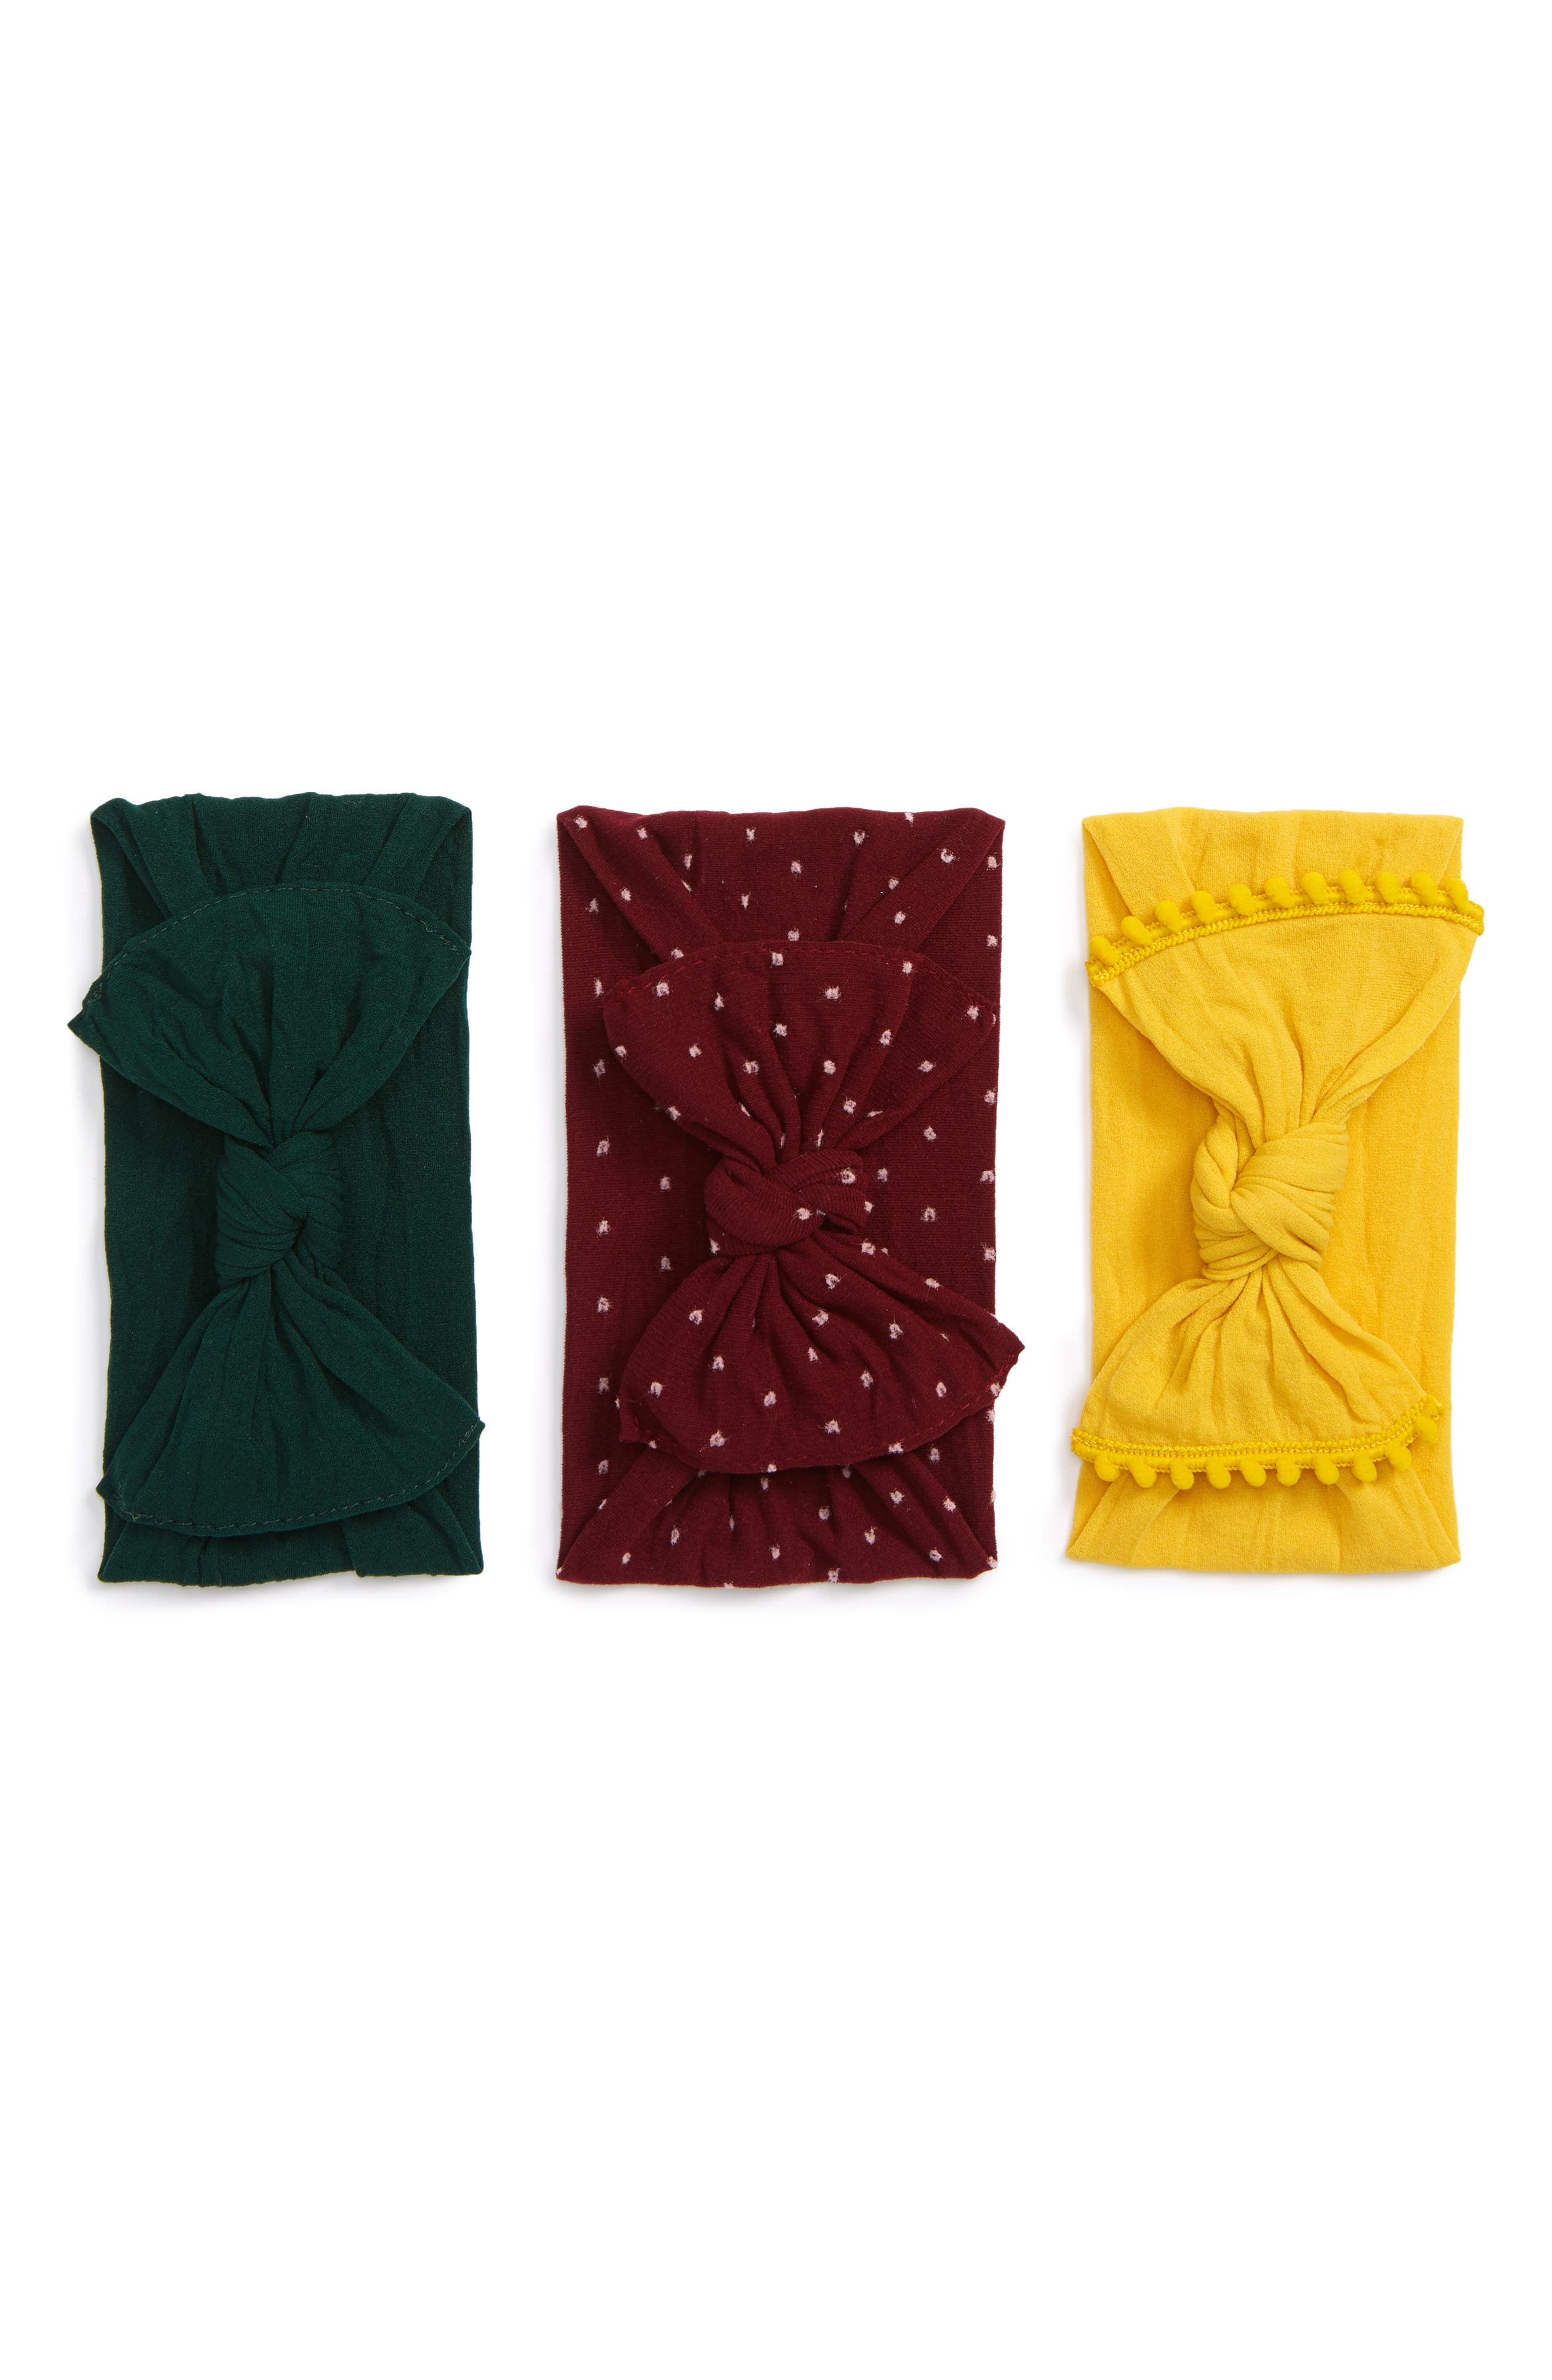 3-Pack Knot Headbands,                         Main,                         color, 930